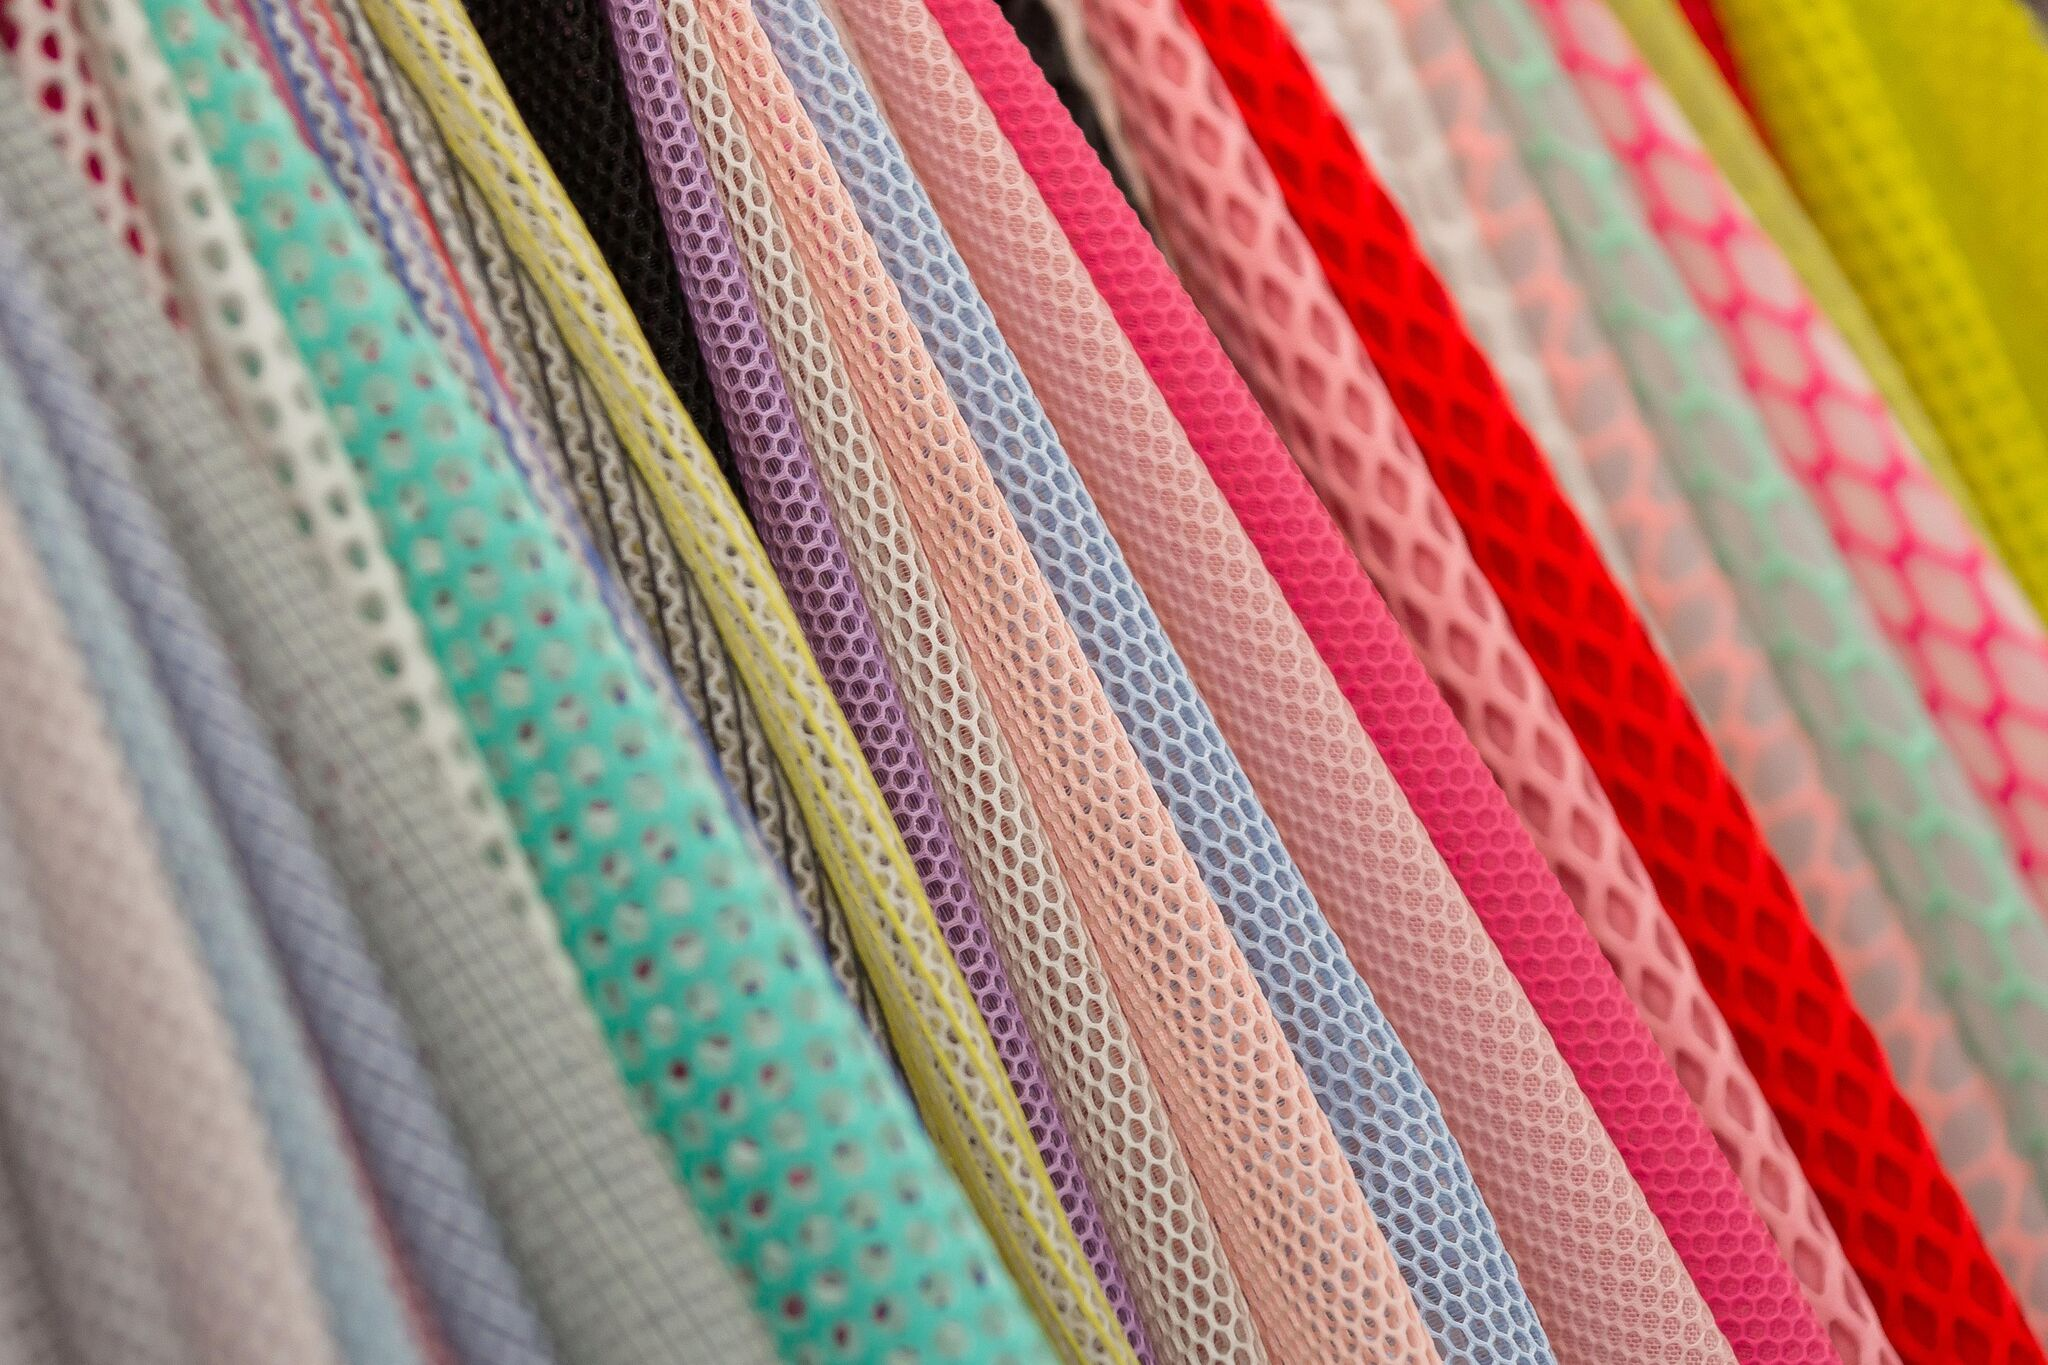 A selection of brightly colored fabrics at Texworld USA. Courtesy of Messe Frankfurt North America.